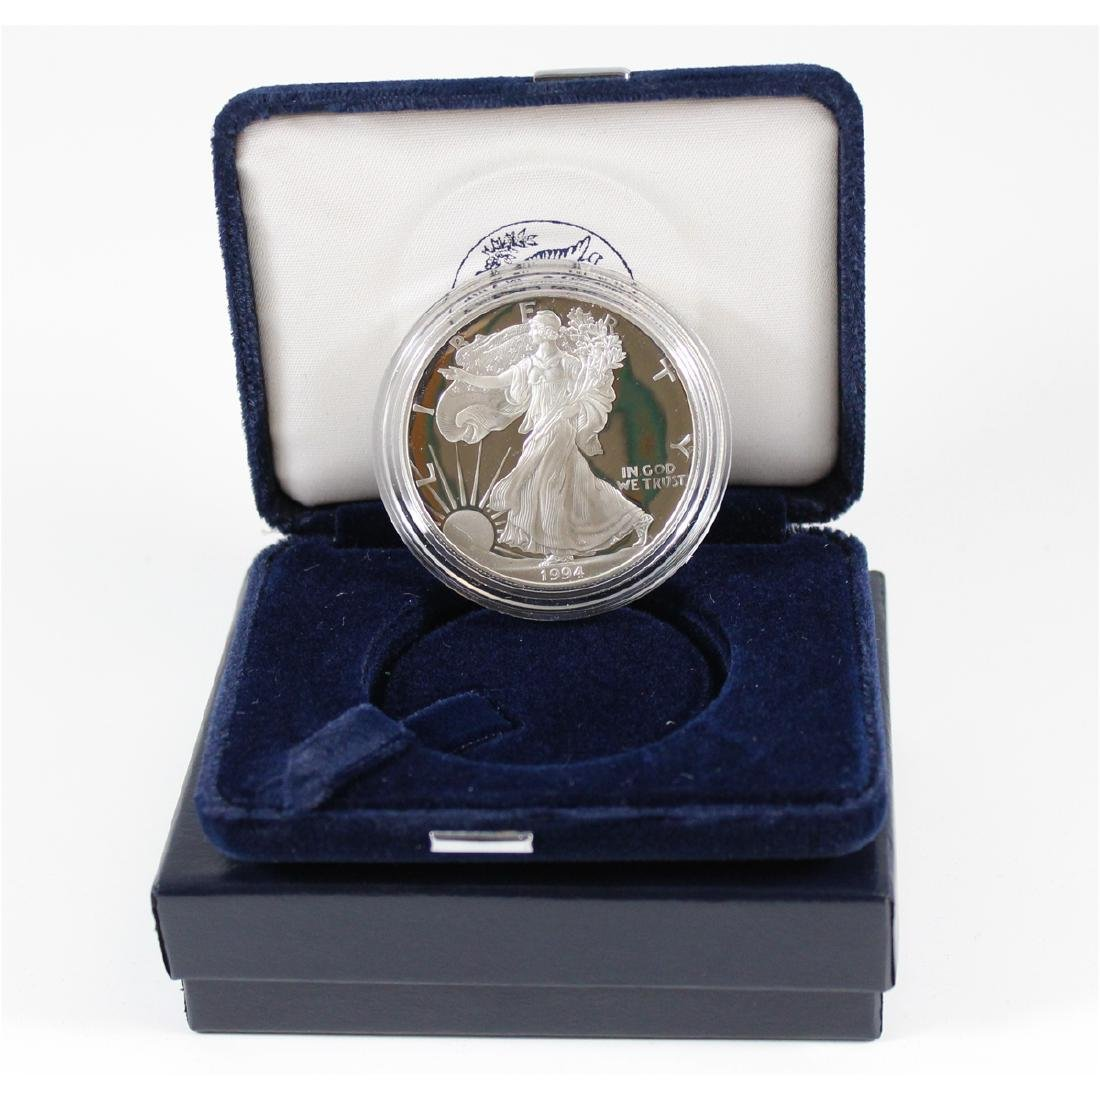 1994 United States 1 oz Proof Silver American Eagle